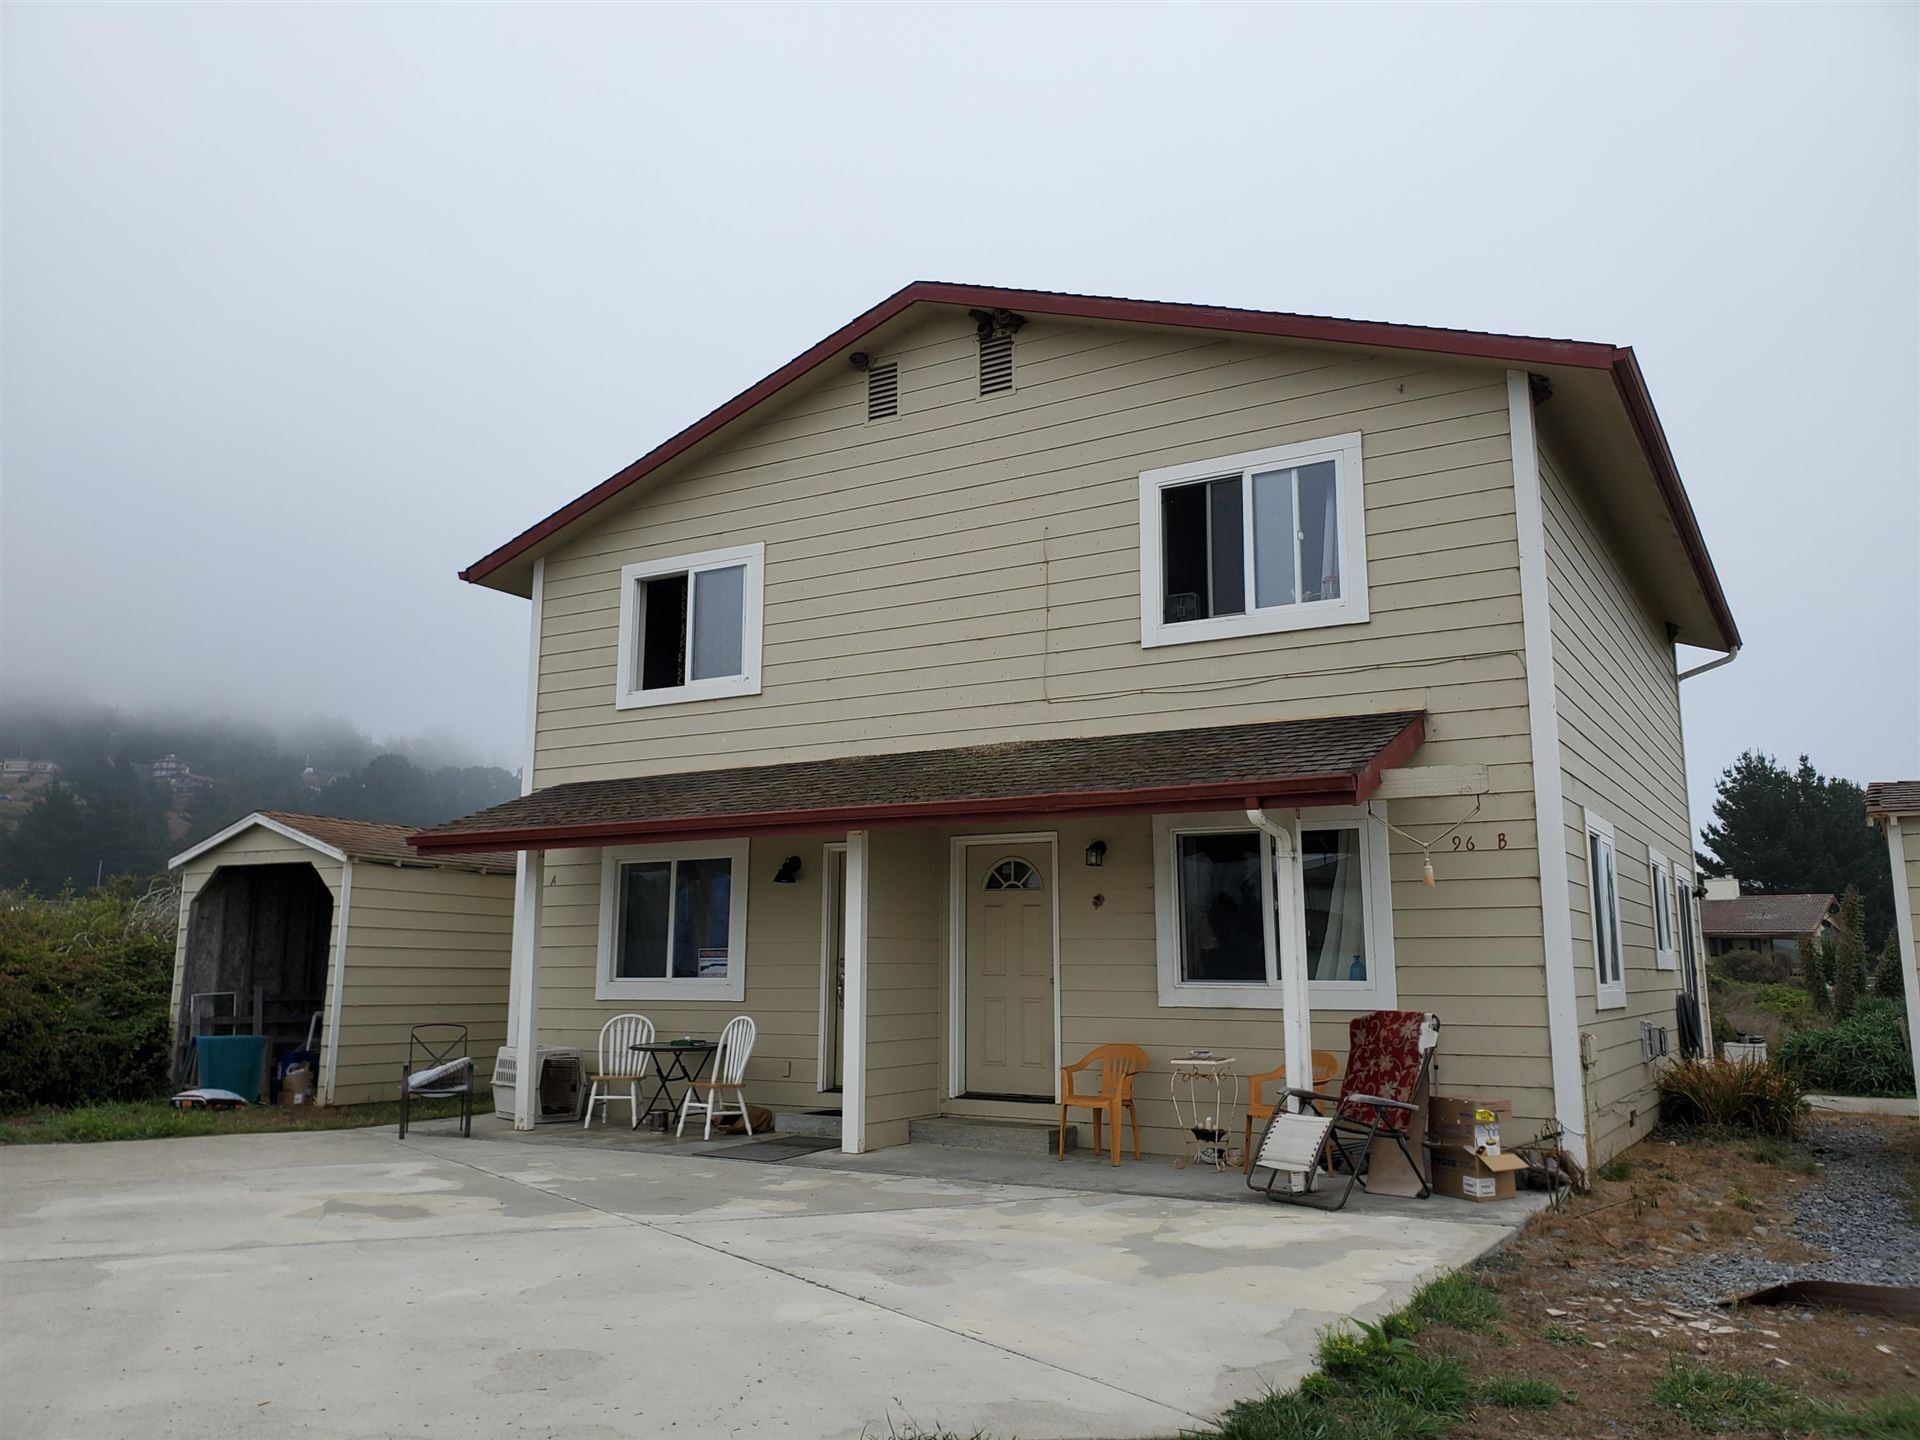 96 Steelhead Court, Shelter Cove, CA 95589 - MLS#: 257412